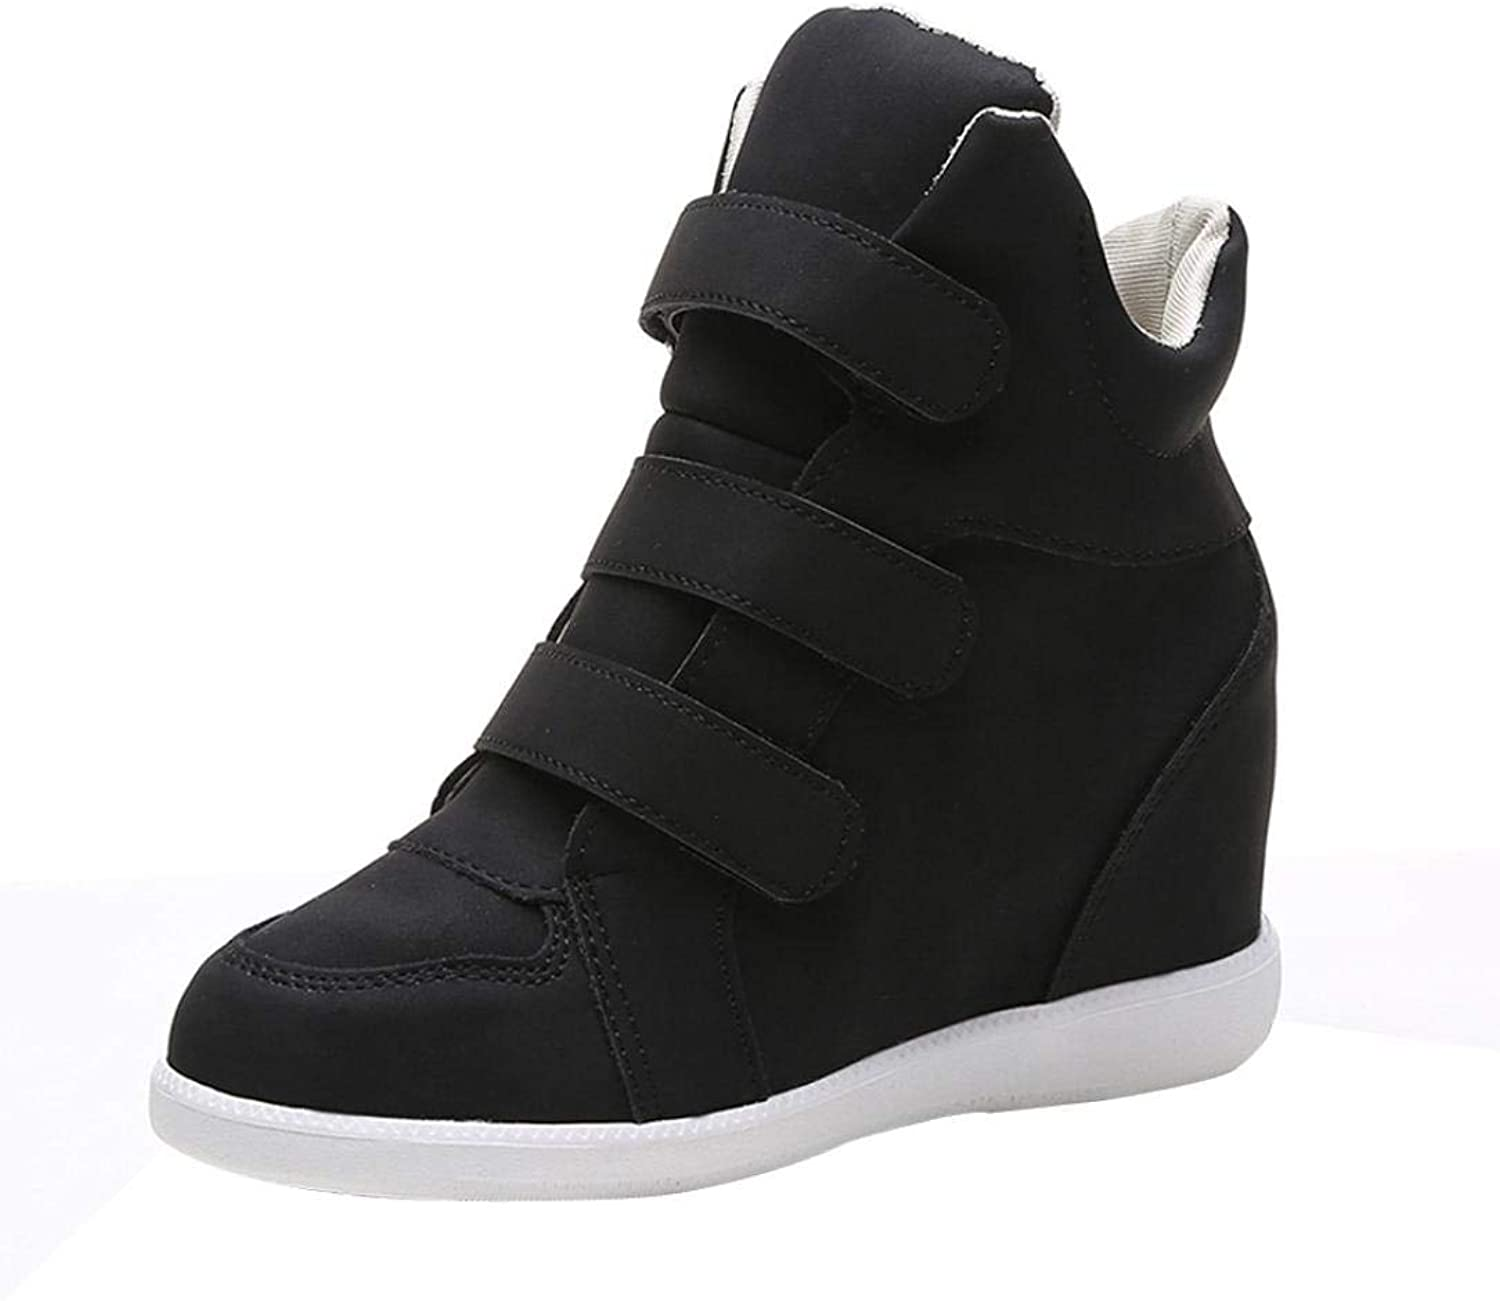 Lady Sport Fashion Women Round Toe Boots Casual Party Wedges shoes Comfortable Gym Fitness Breathable Leisure Elegant Soft Wild Tight Super Quality for Womens